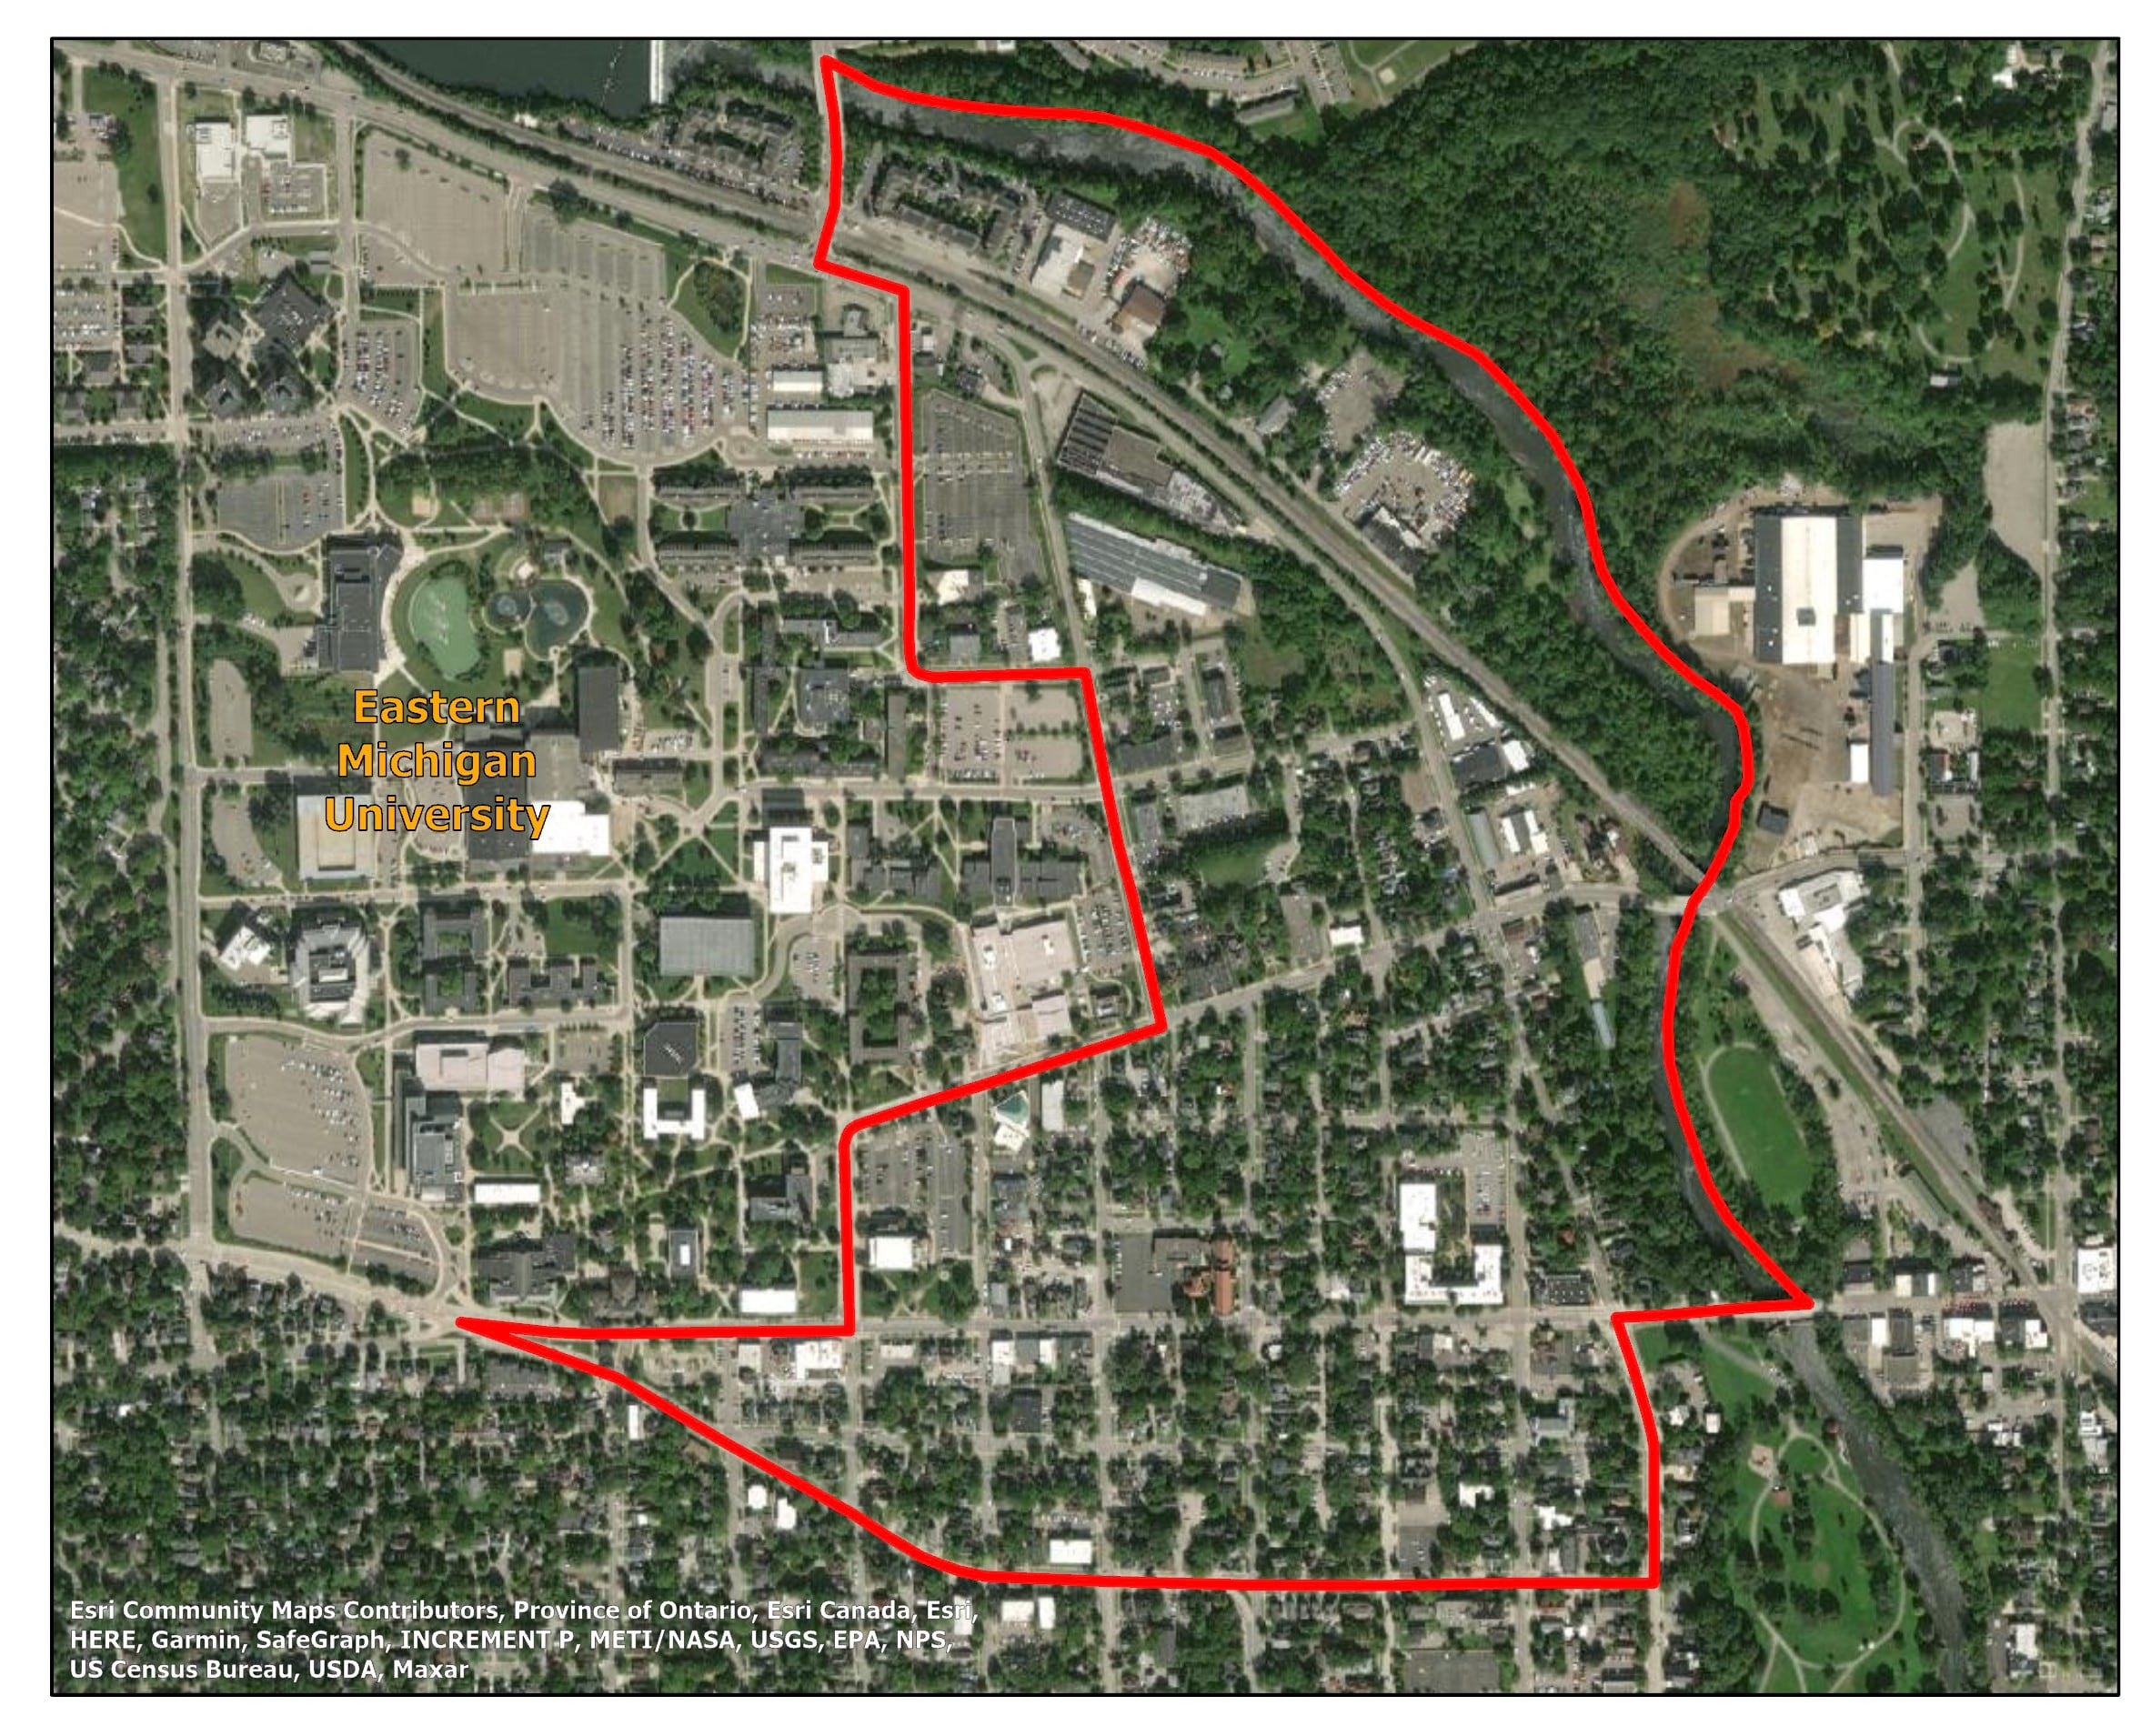 Map displaying the TIGER 2010 boundaries of tract 26161411000 in Ypsilanti, Michigan, which falls next to Eastern Michigan University.